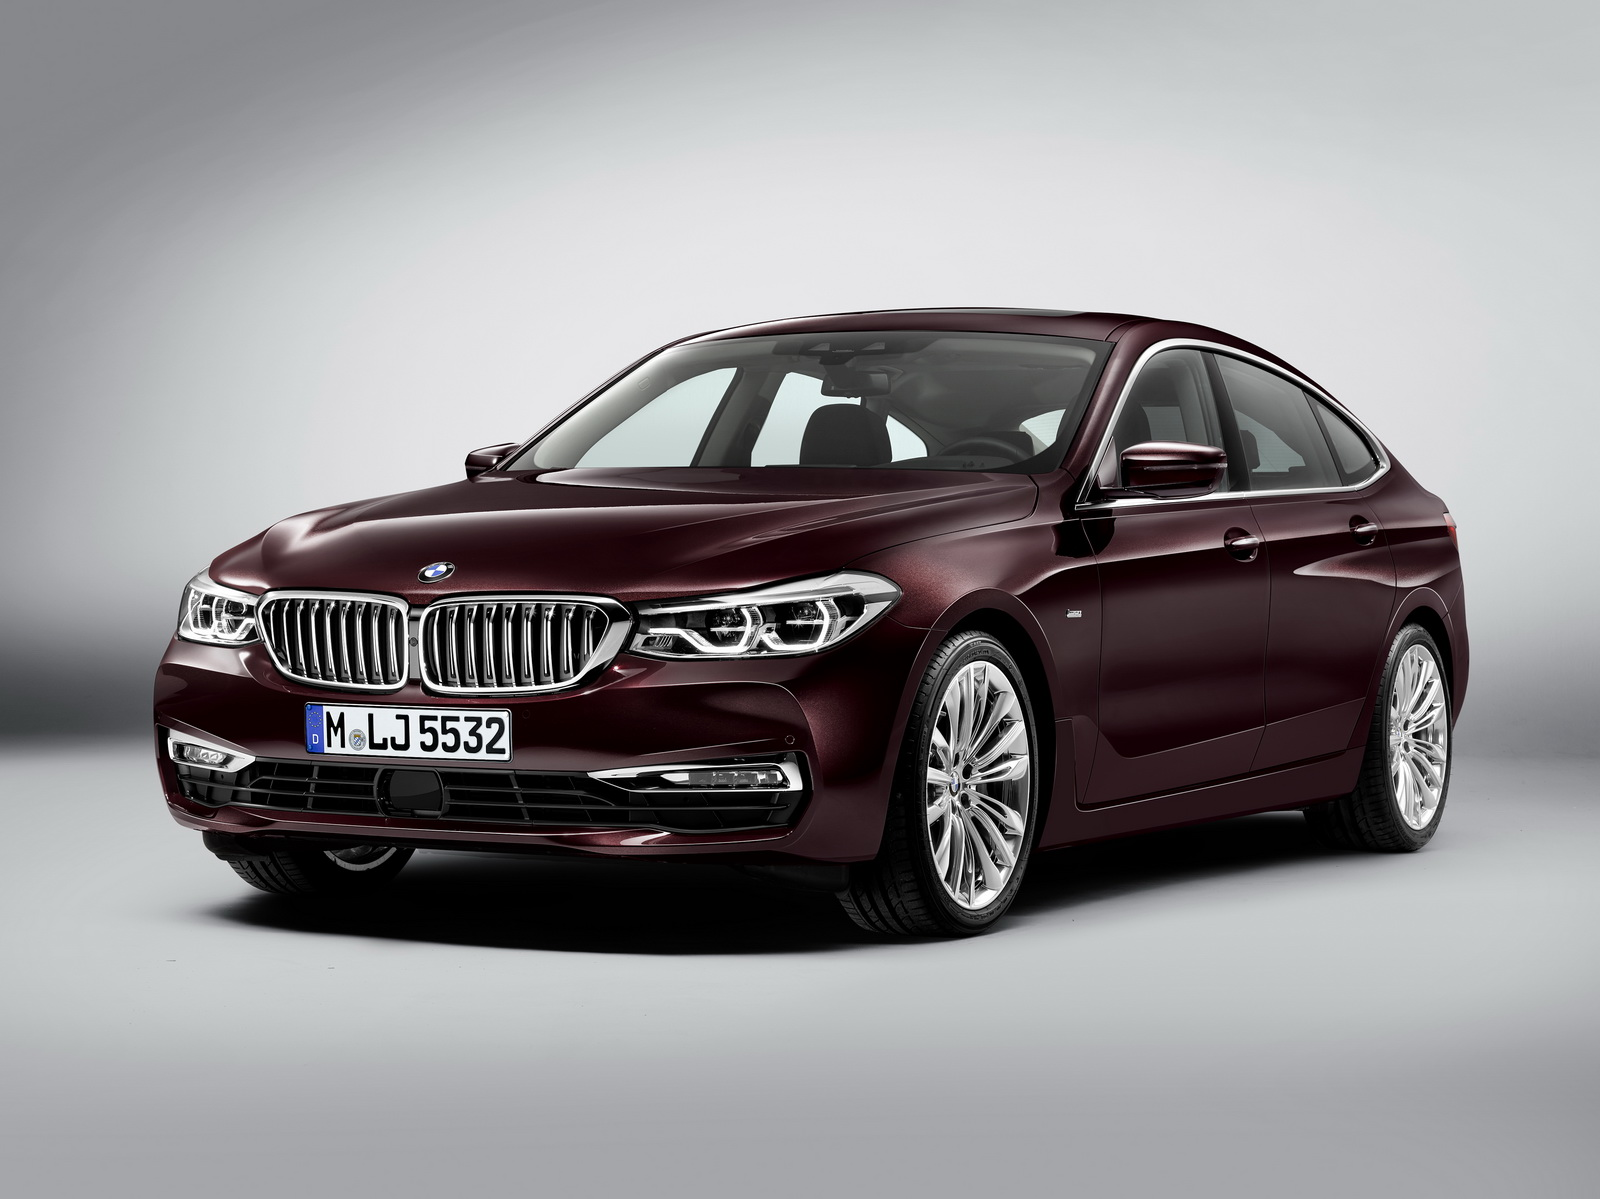 Leaked This Is The New Bmw 6 Series Gran Turismo